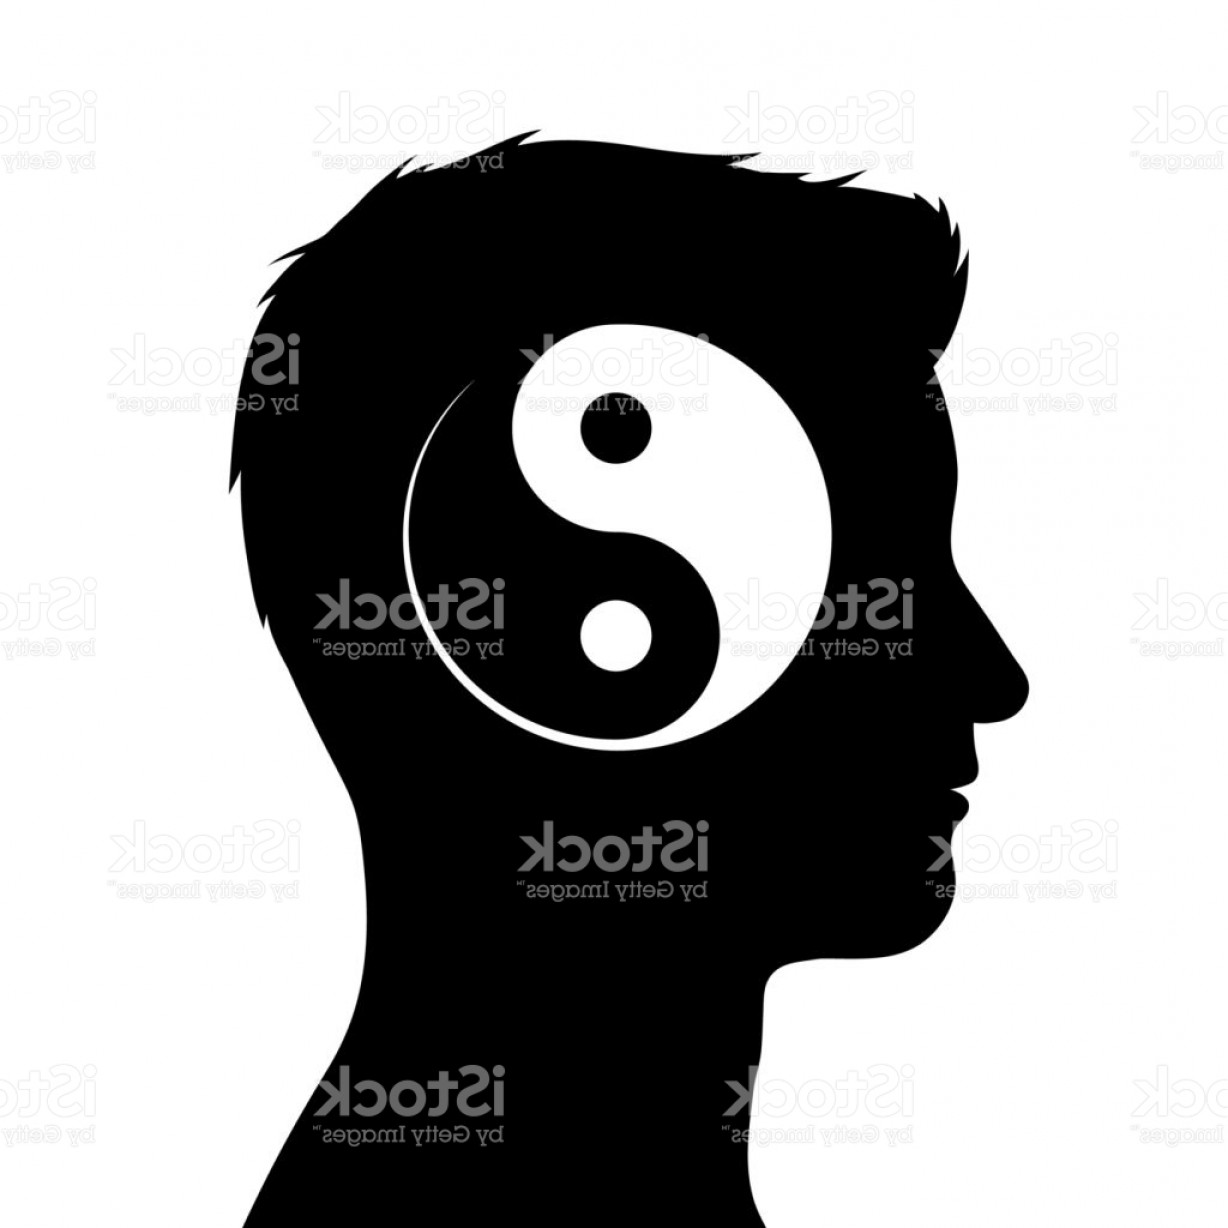 1228x1228 Silhouette Of Male Head With Yin Yang Symbol Gm Createmepink